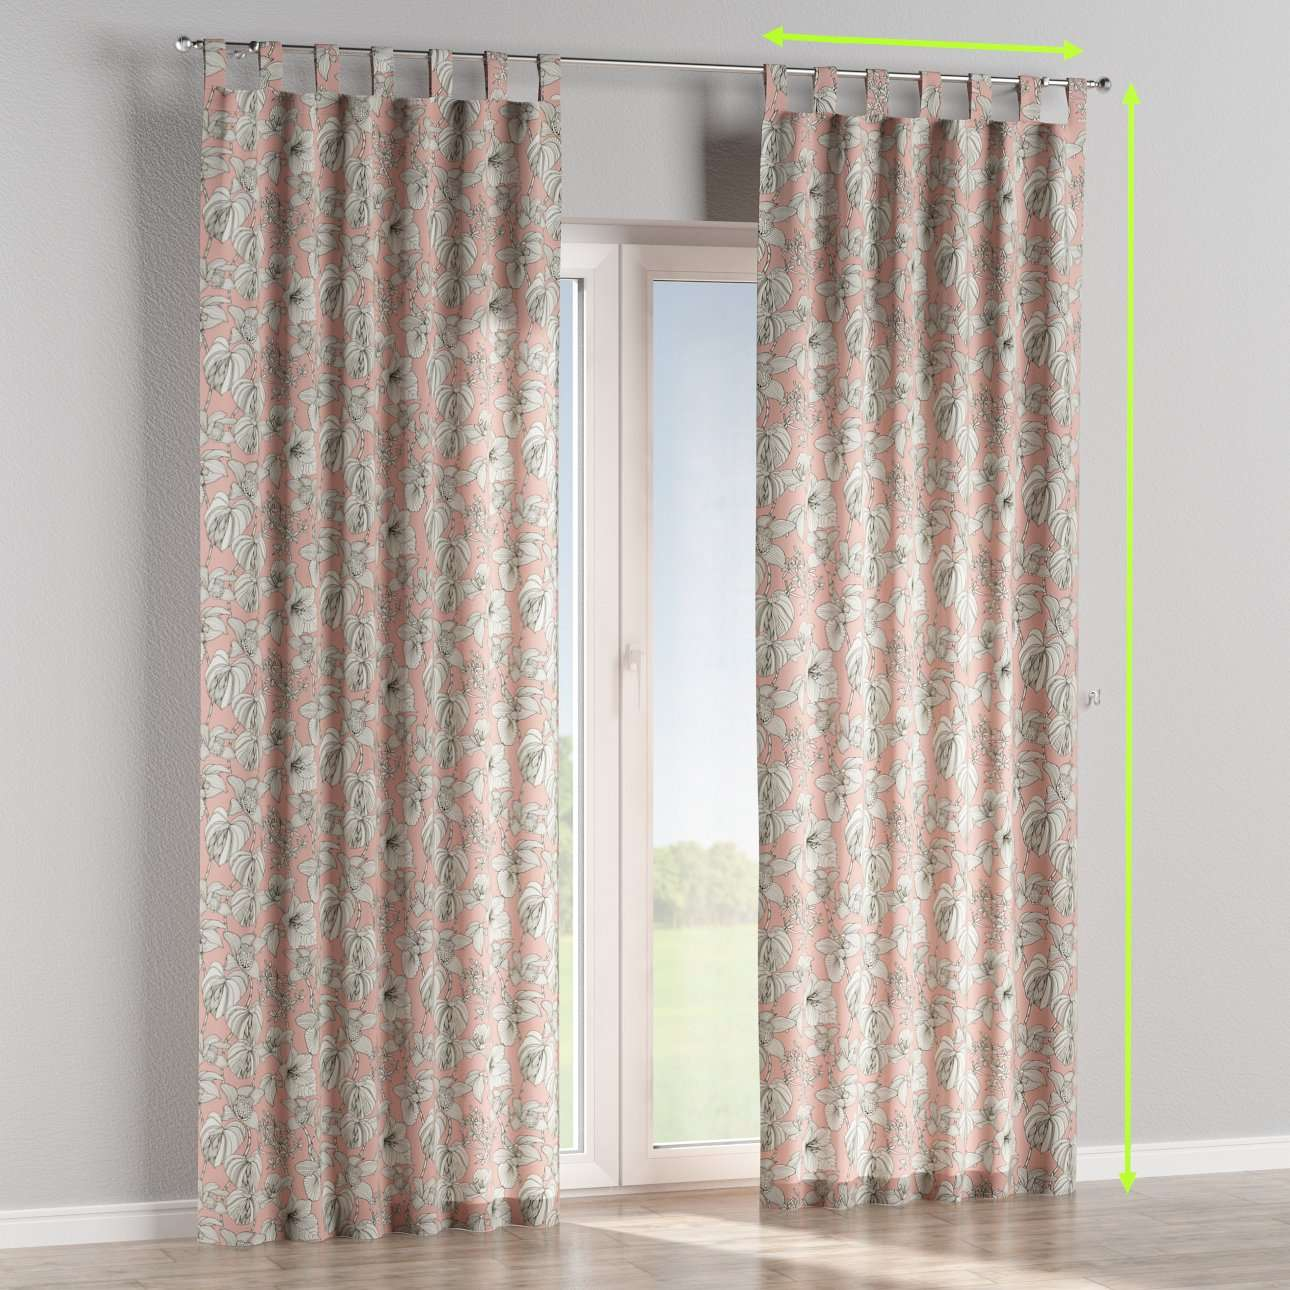 Tab top curtains in collection Brooklyn, fabric: 137-74